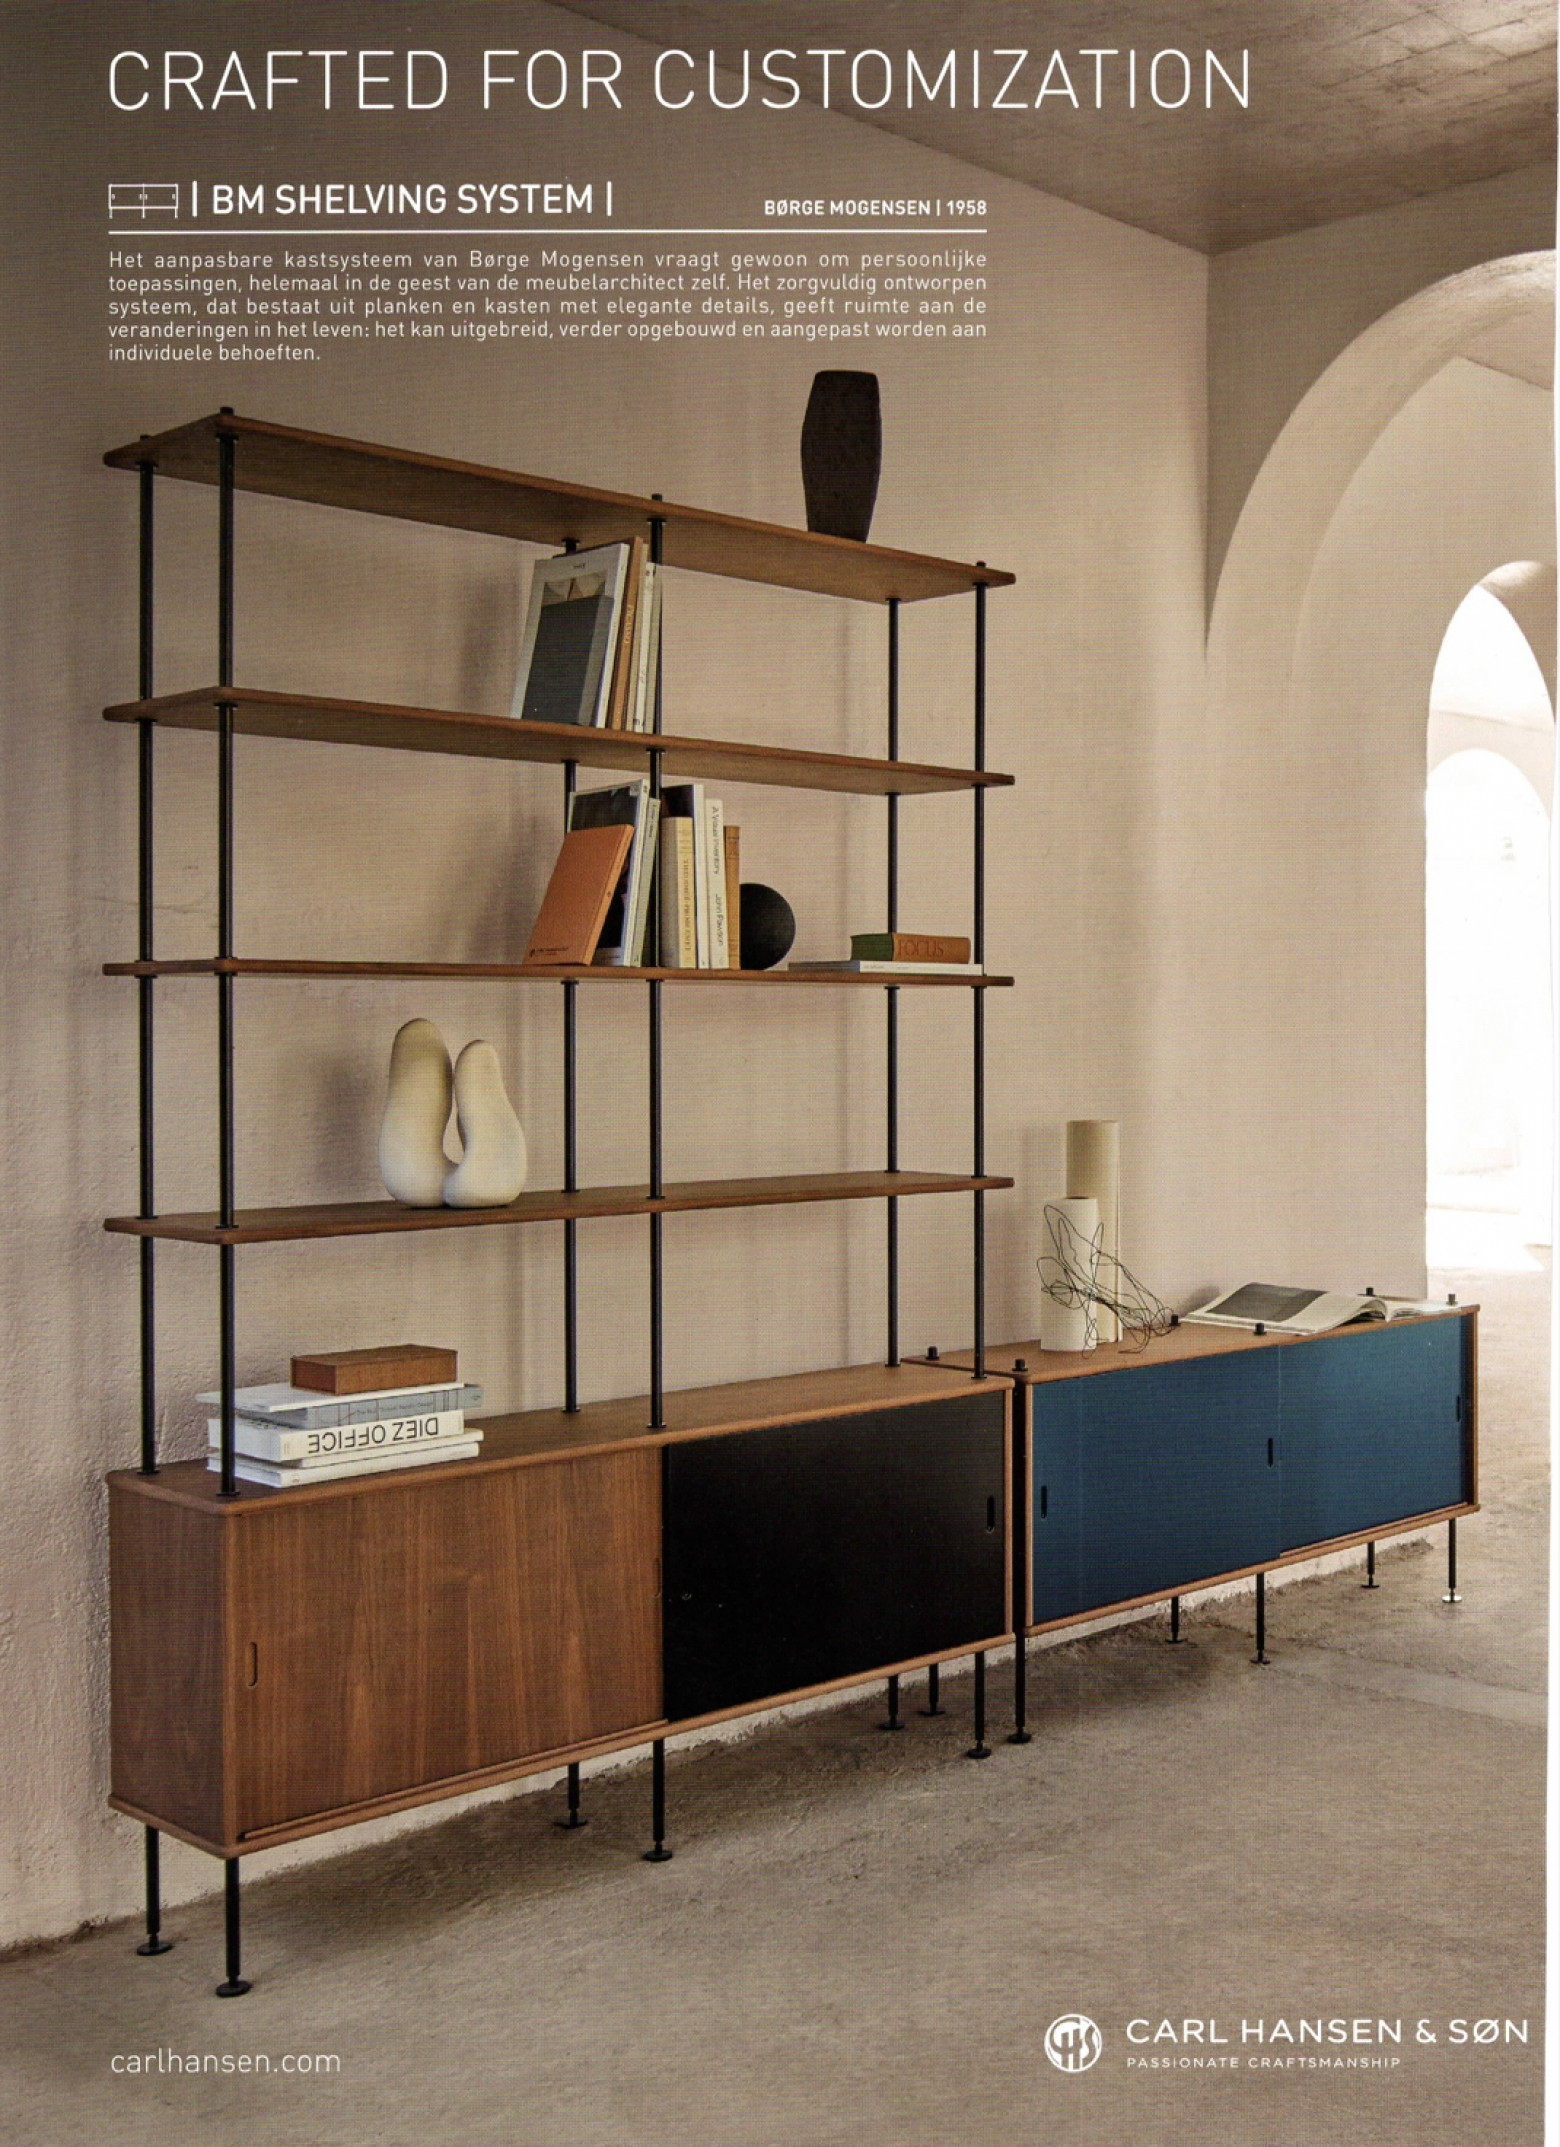 Borge Mogensen Shelving System, design 1958 (advertentie)  Victors Design Agency